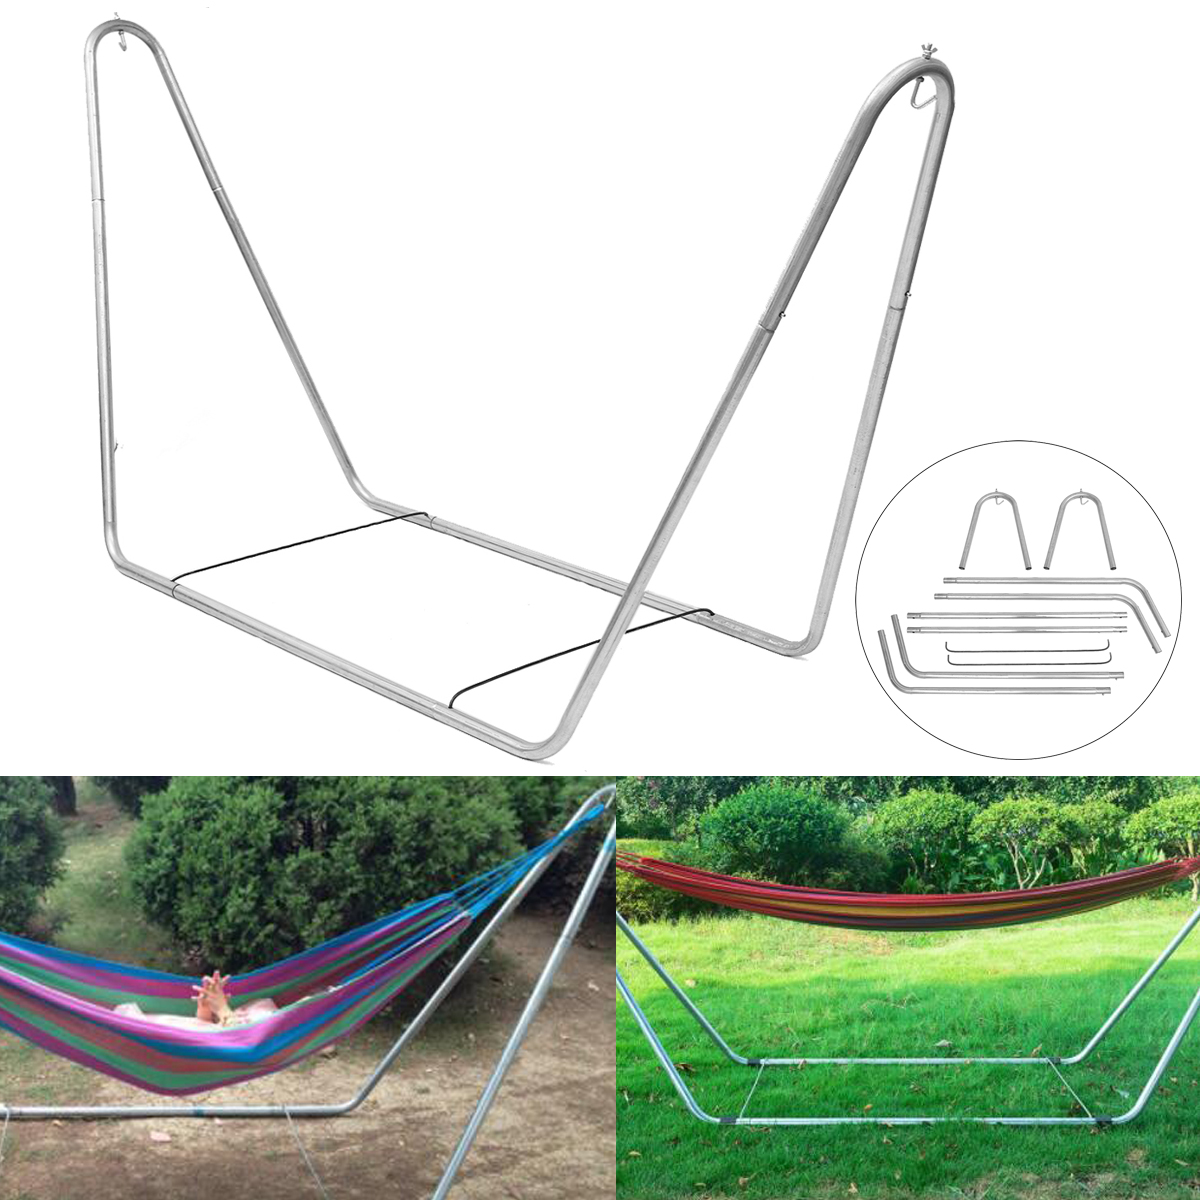 Surprising Us 142 08 52 Off Portable Hammock Steel Stand Camping Outdoor Travel Swing Chair Bed Hammock Frame Stand Stand Only In Hammocks From Furniture On Uwap Interior Chair Design Uwaporg